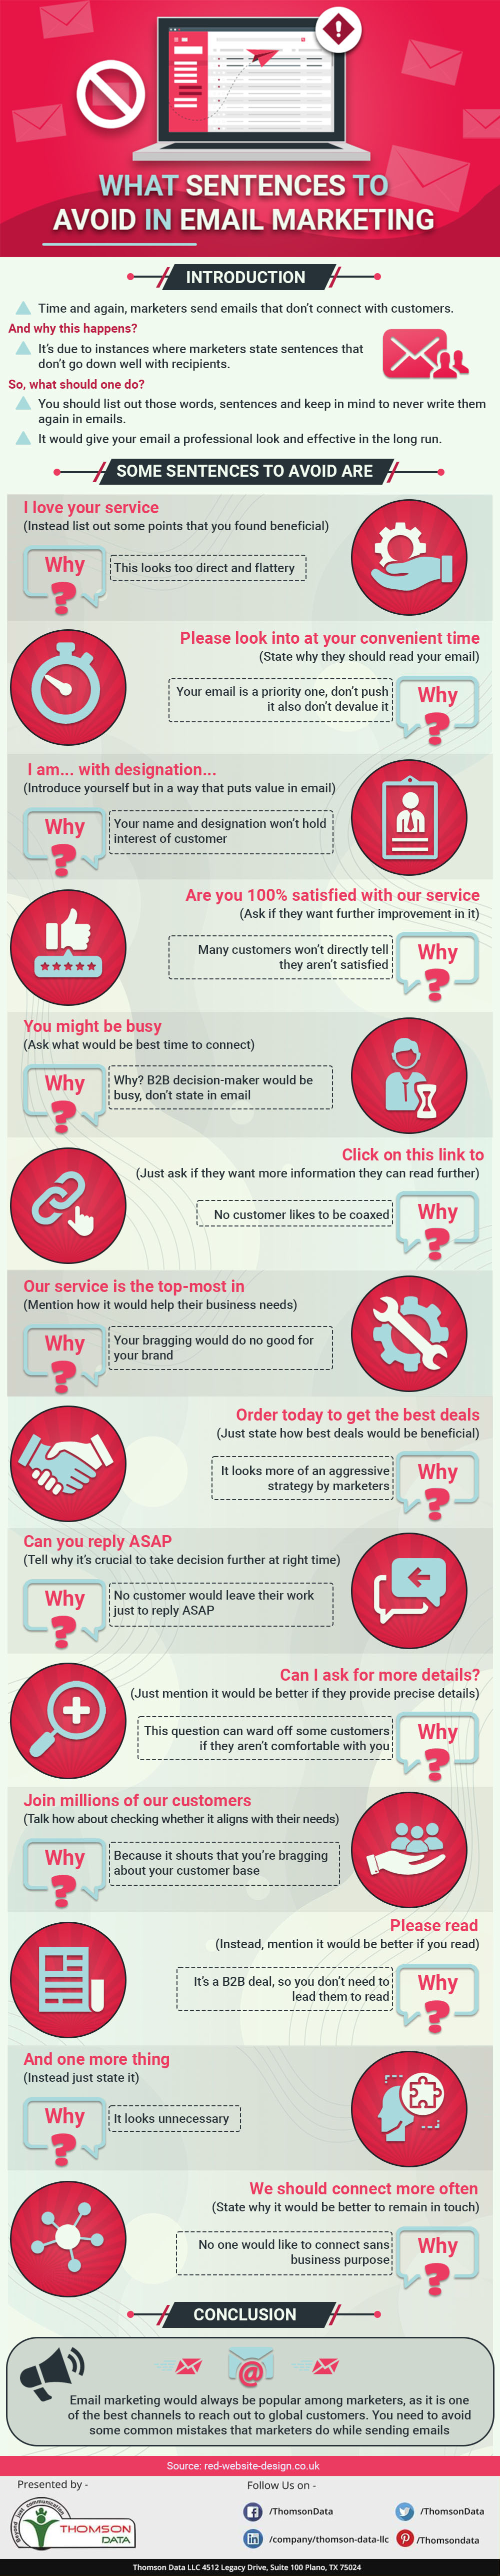 What Sentences to Avoid in Email Marketing?